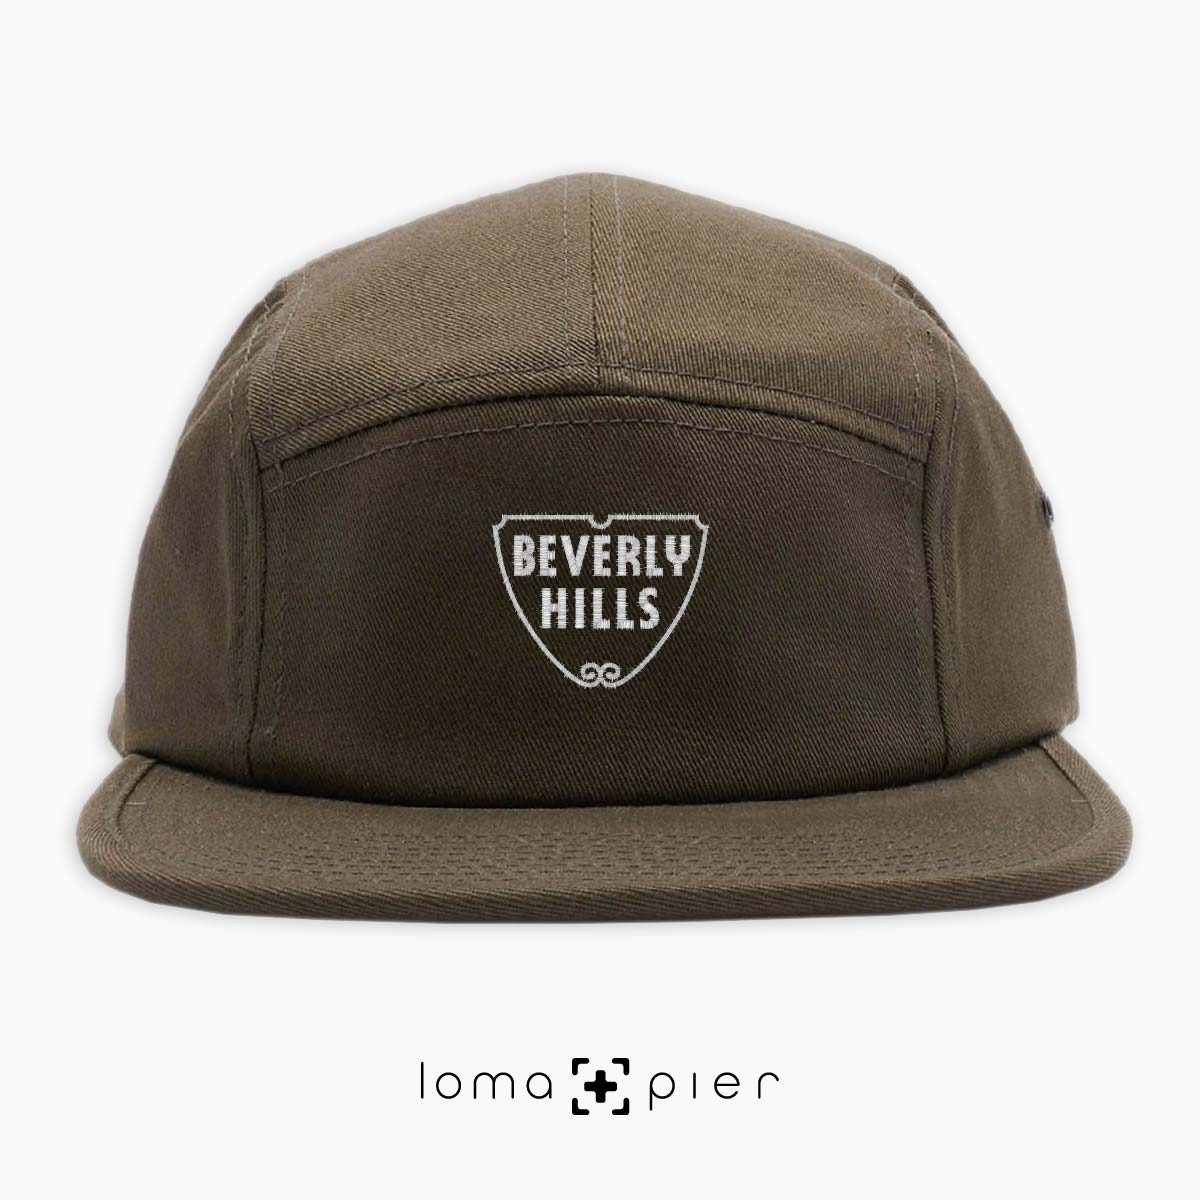 BEVERLY HILLS typography embroidered on an olive green cotton 5-panel hat with white thread by loma+pier hat store